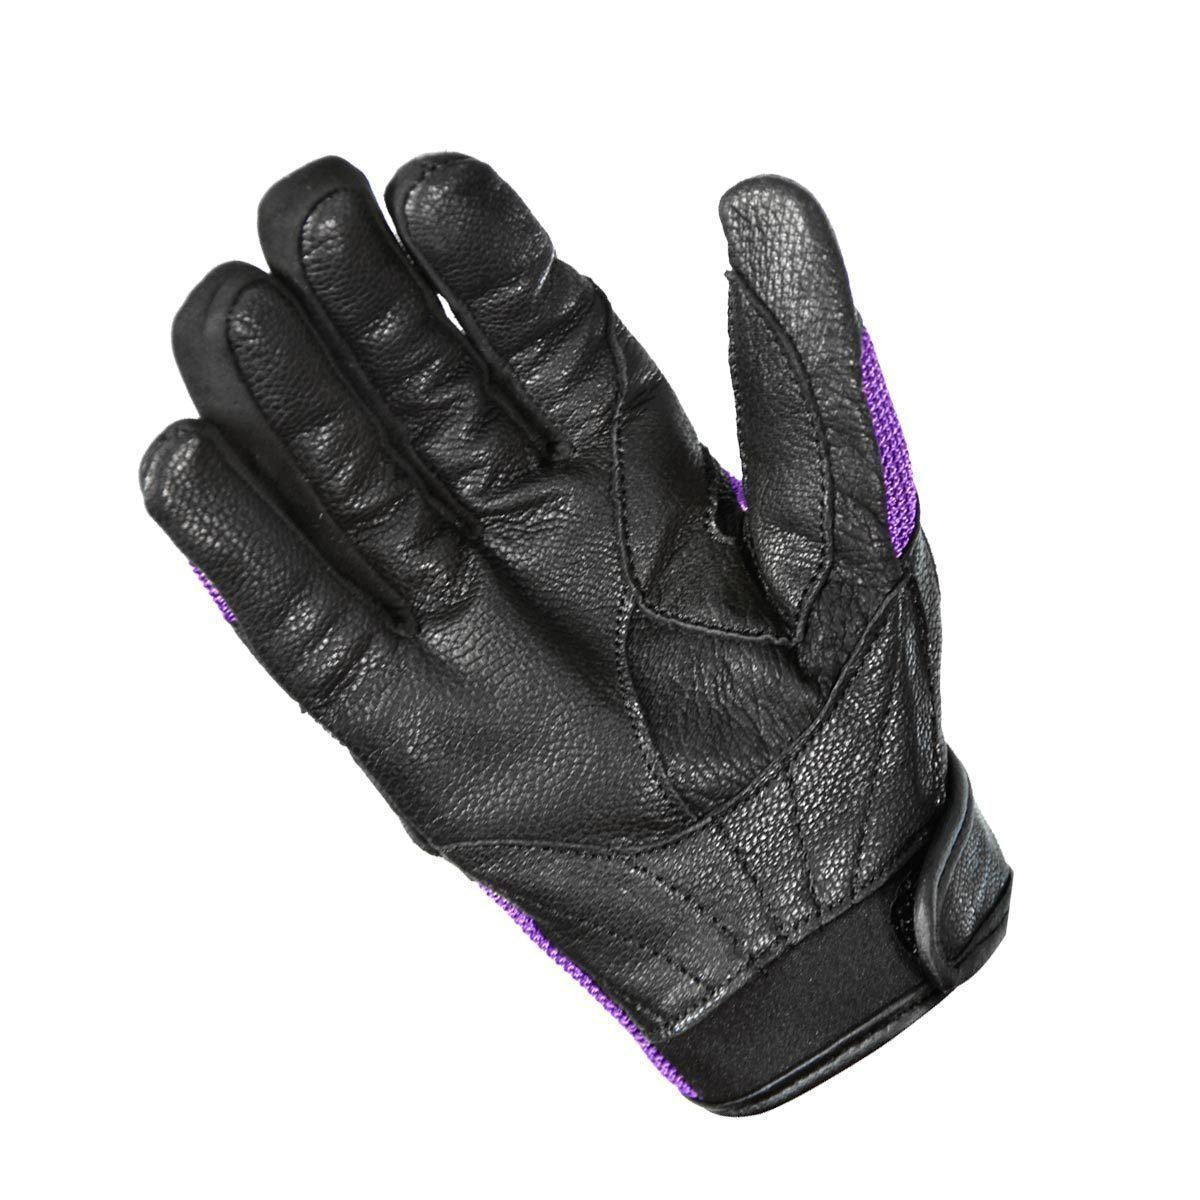 Xelement XG80208 Women's Black and Purple Mesh Cool Rider Motorcycle